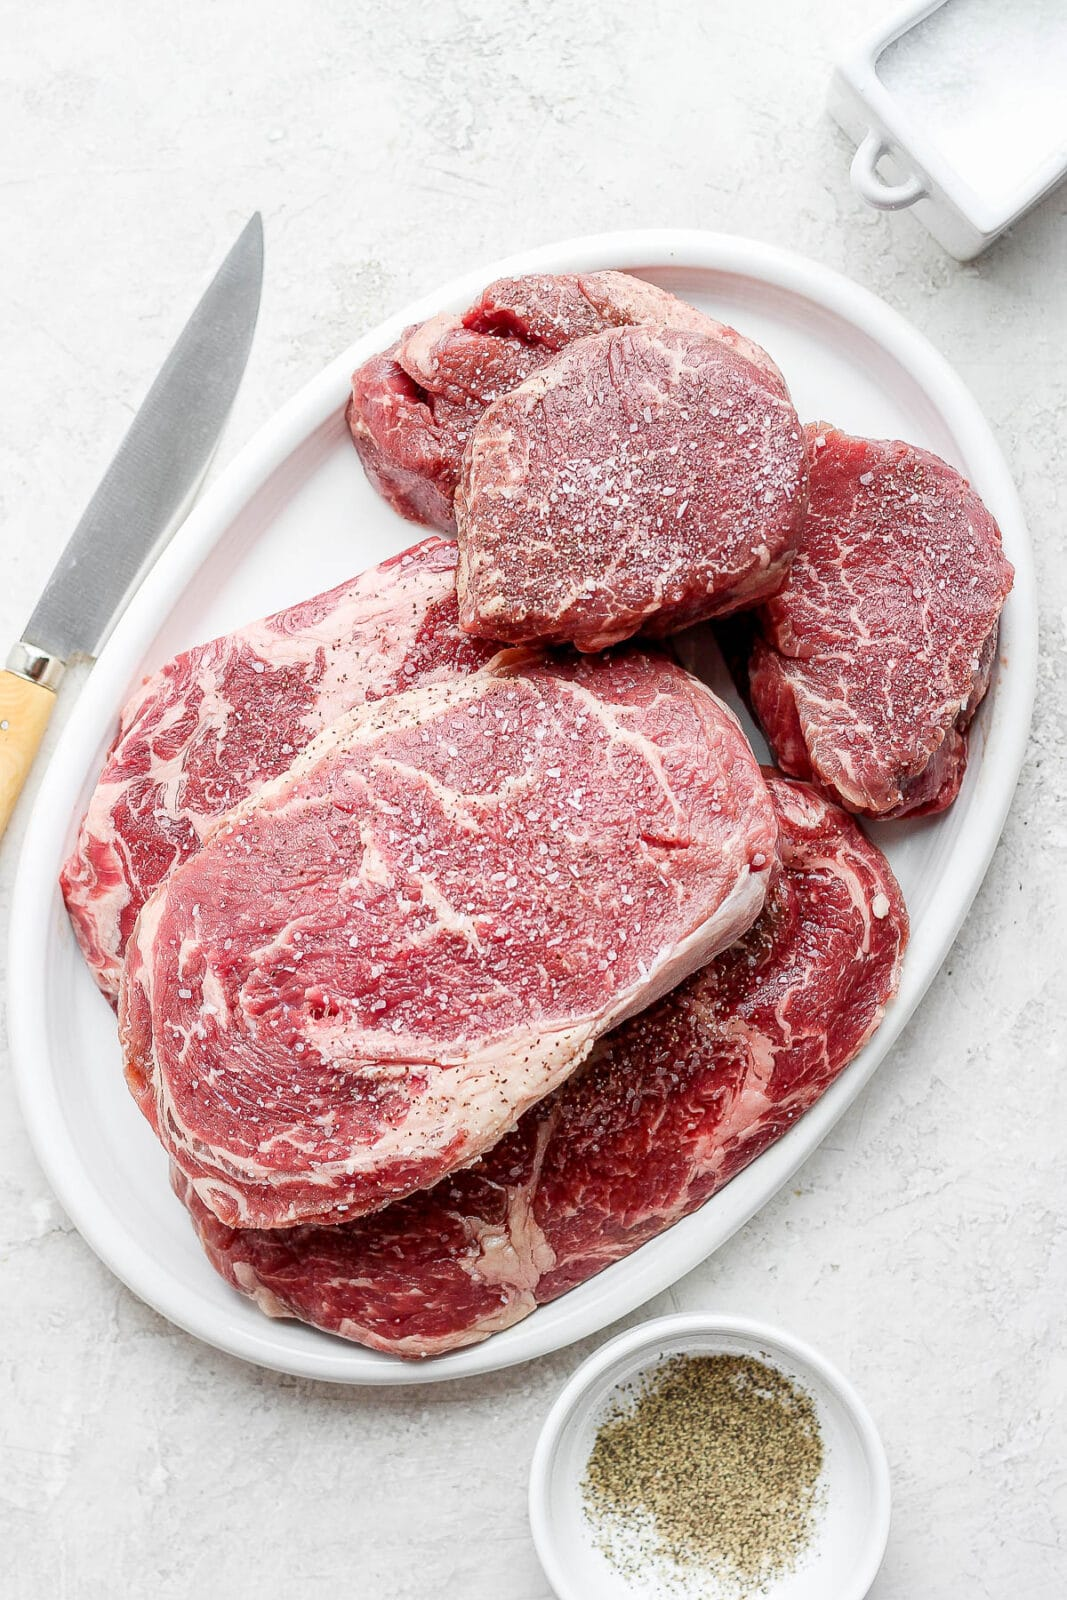 A platter of steaks seasoned with salt and pepper.